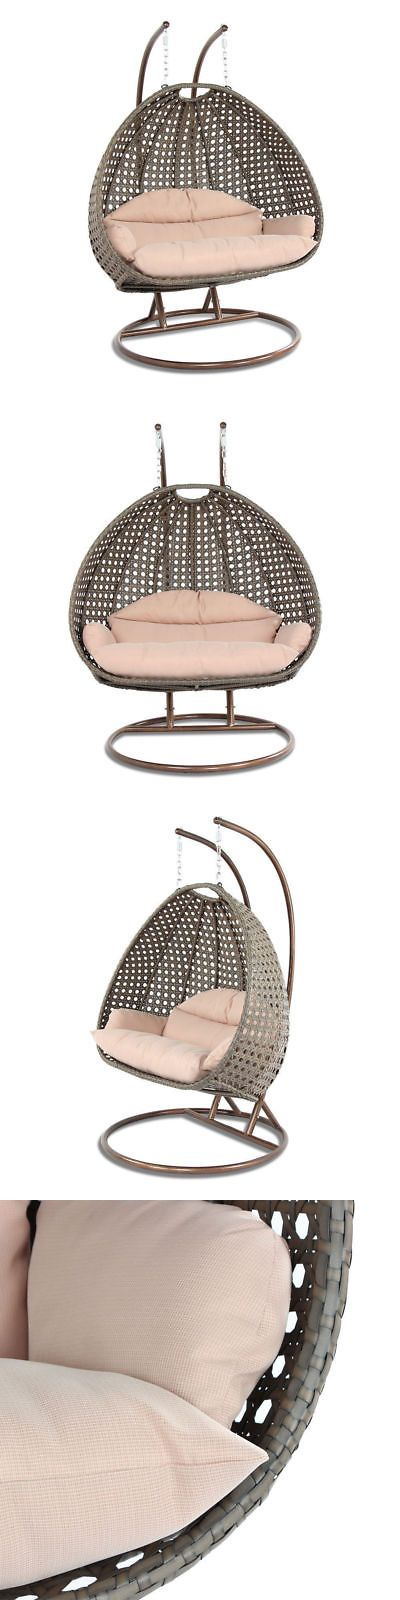 Chairs 79682: Outdoor All Weather 2 Person Pe Wicker Swing Egg Chair Hanging Hammock Garden Lt -> BUY IT NOW ONLY: $594.73 on eBay!